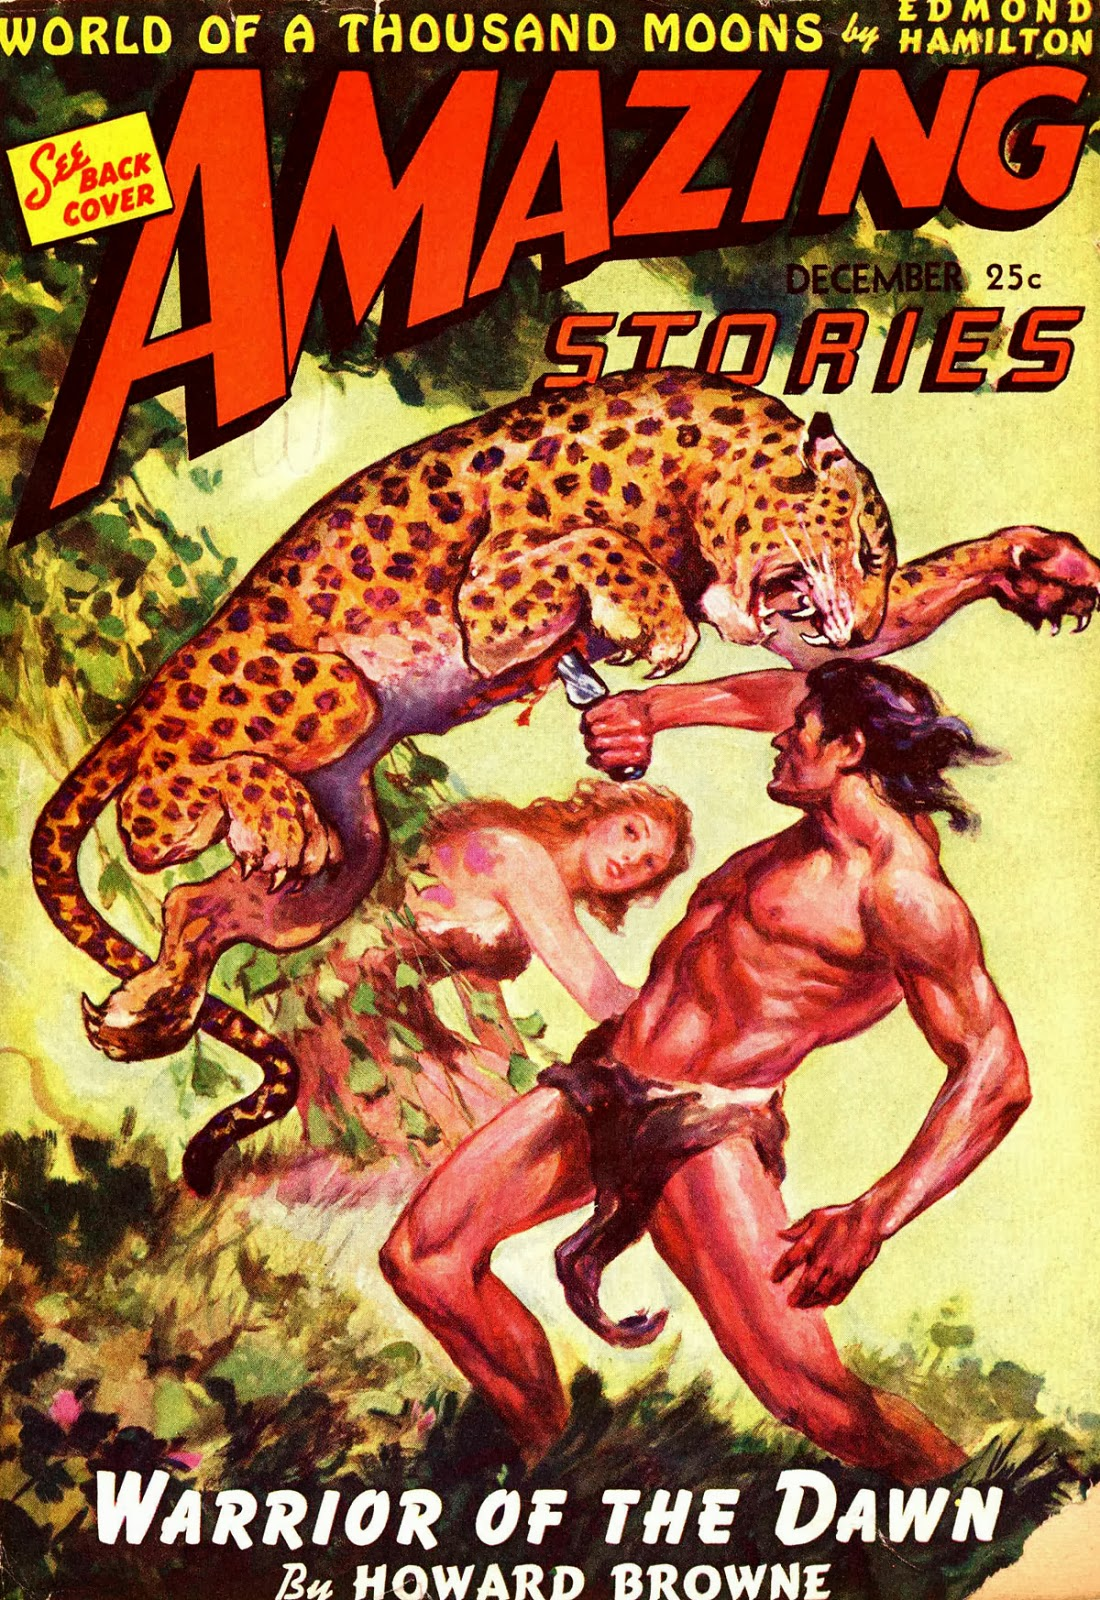 Amazing Stories Volume 21 Number 06: The Geeky Nerfherder: Sci-Fi, Fantasy & Horror Cover Art